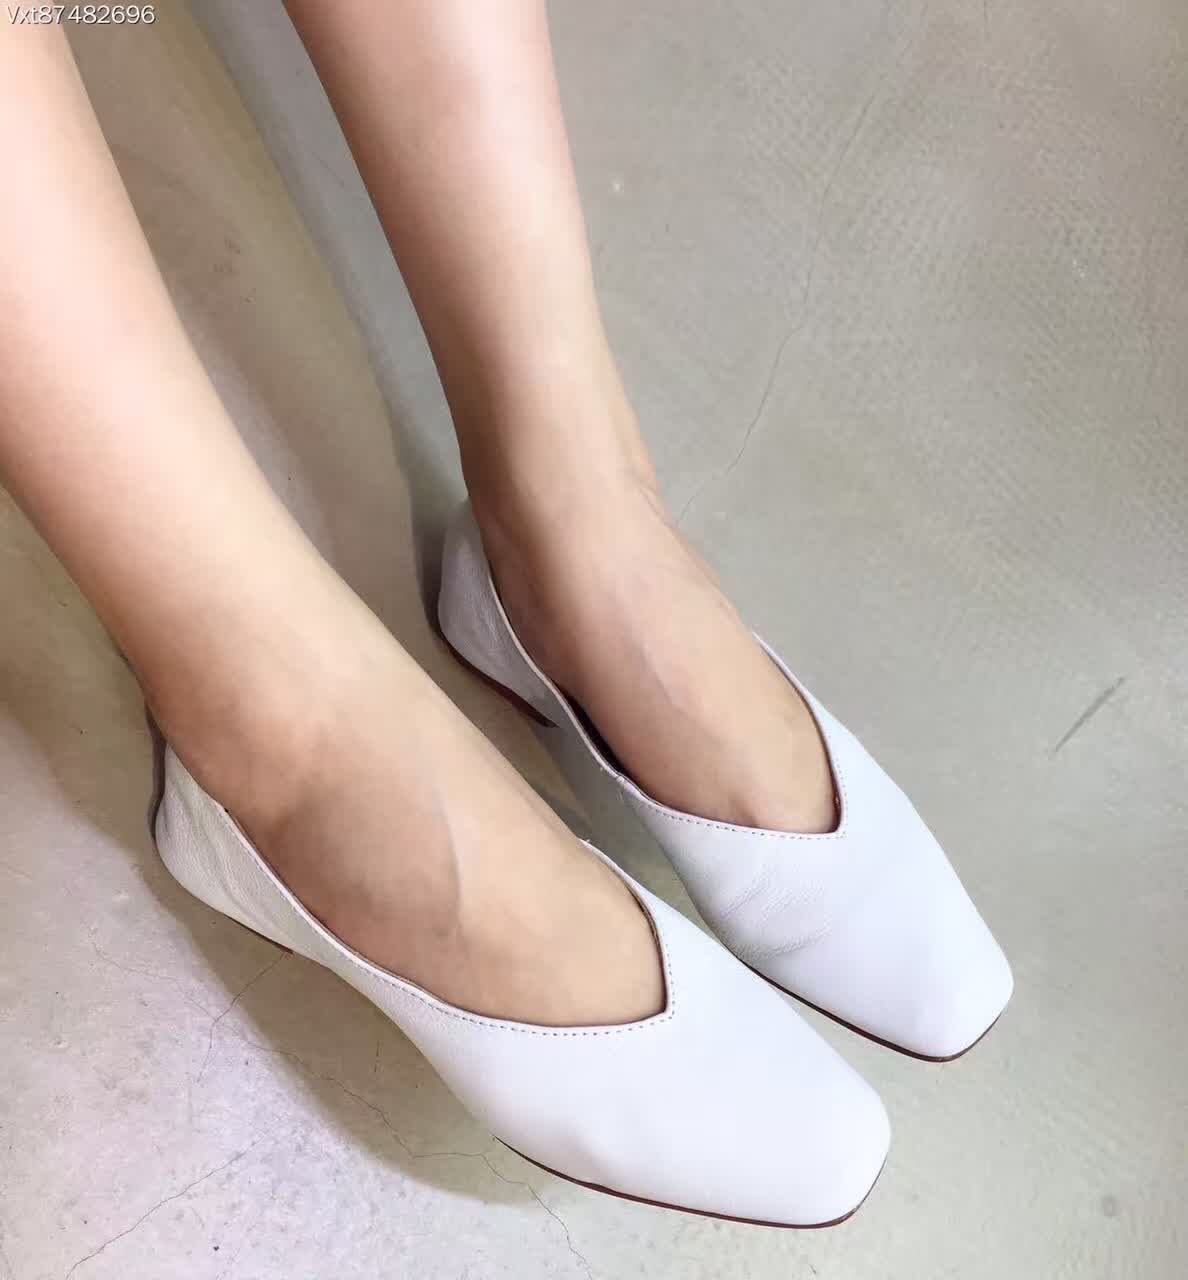 All Cowhide Genuine Leather Breathable Low Top Flat Shoes Ballerina Flats 2016 New Arrival White Ballet Shoes<br><br>Aliexpress